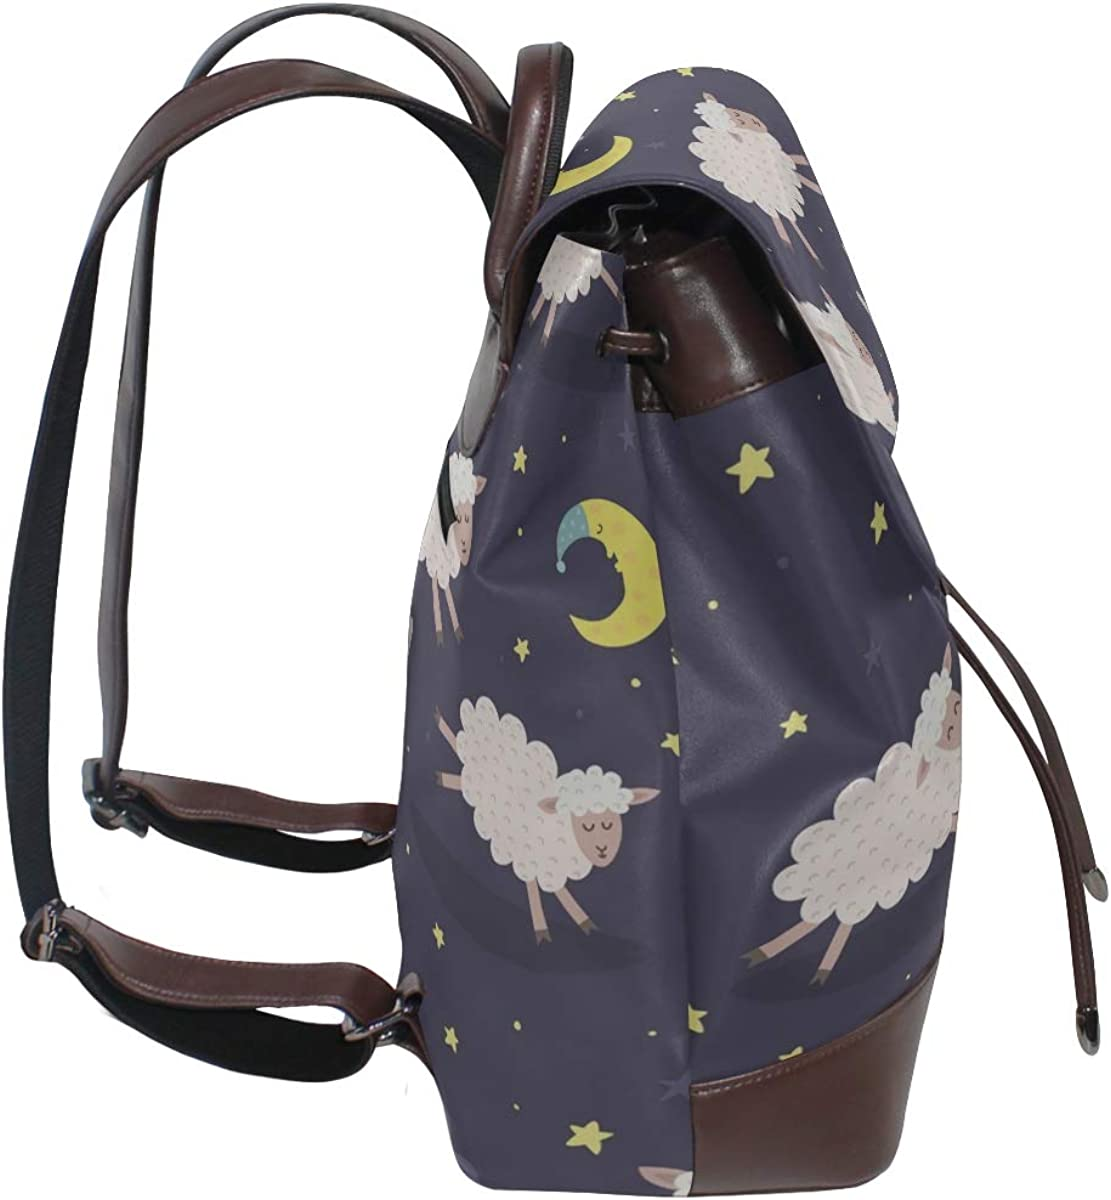 Cute Sheeps Jumping Over A Fence Girls Backpacks Daily Shoulder Bag Drawstring Waterproof Leather Backpack For Kids Fashion Bags For Girls For Women